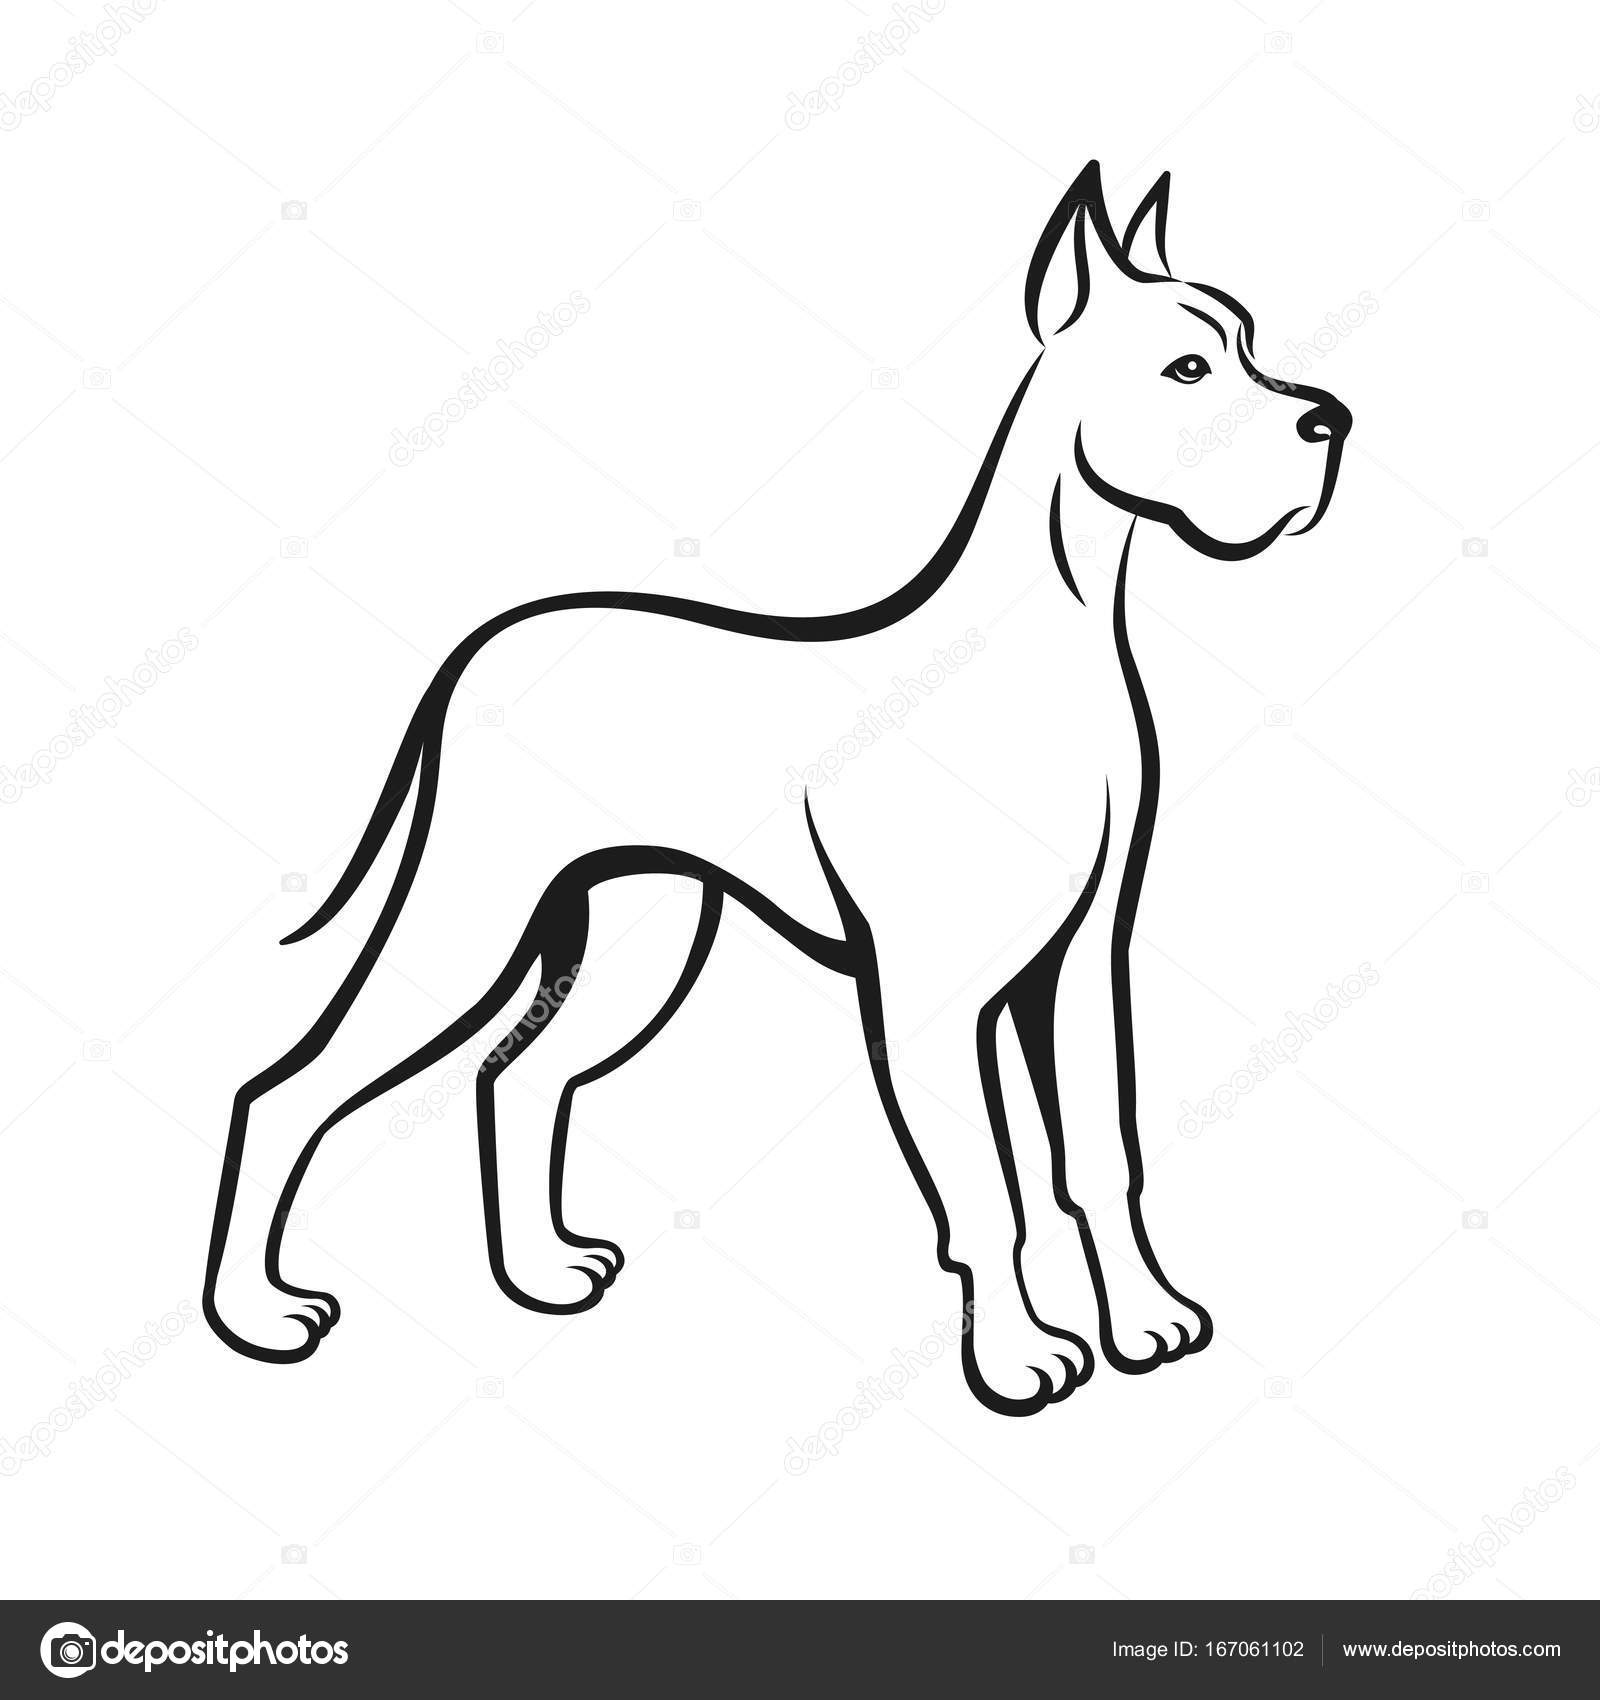 Line Drawing Of A Dog : Dog line drawing great dane can be used as pet shop logo